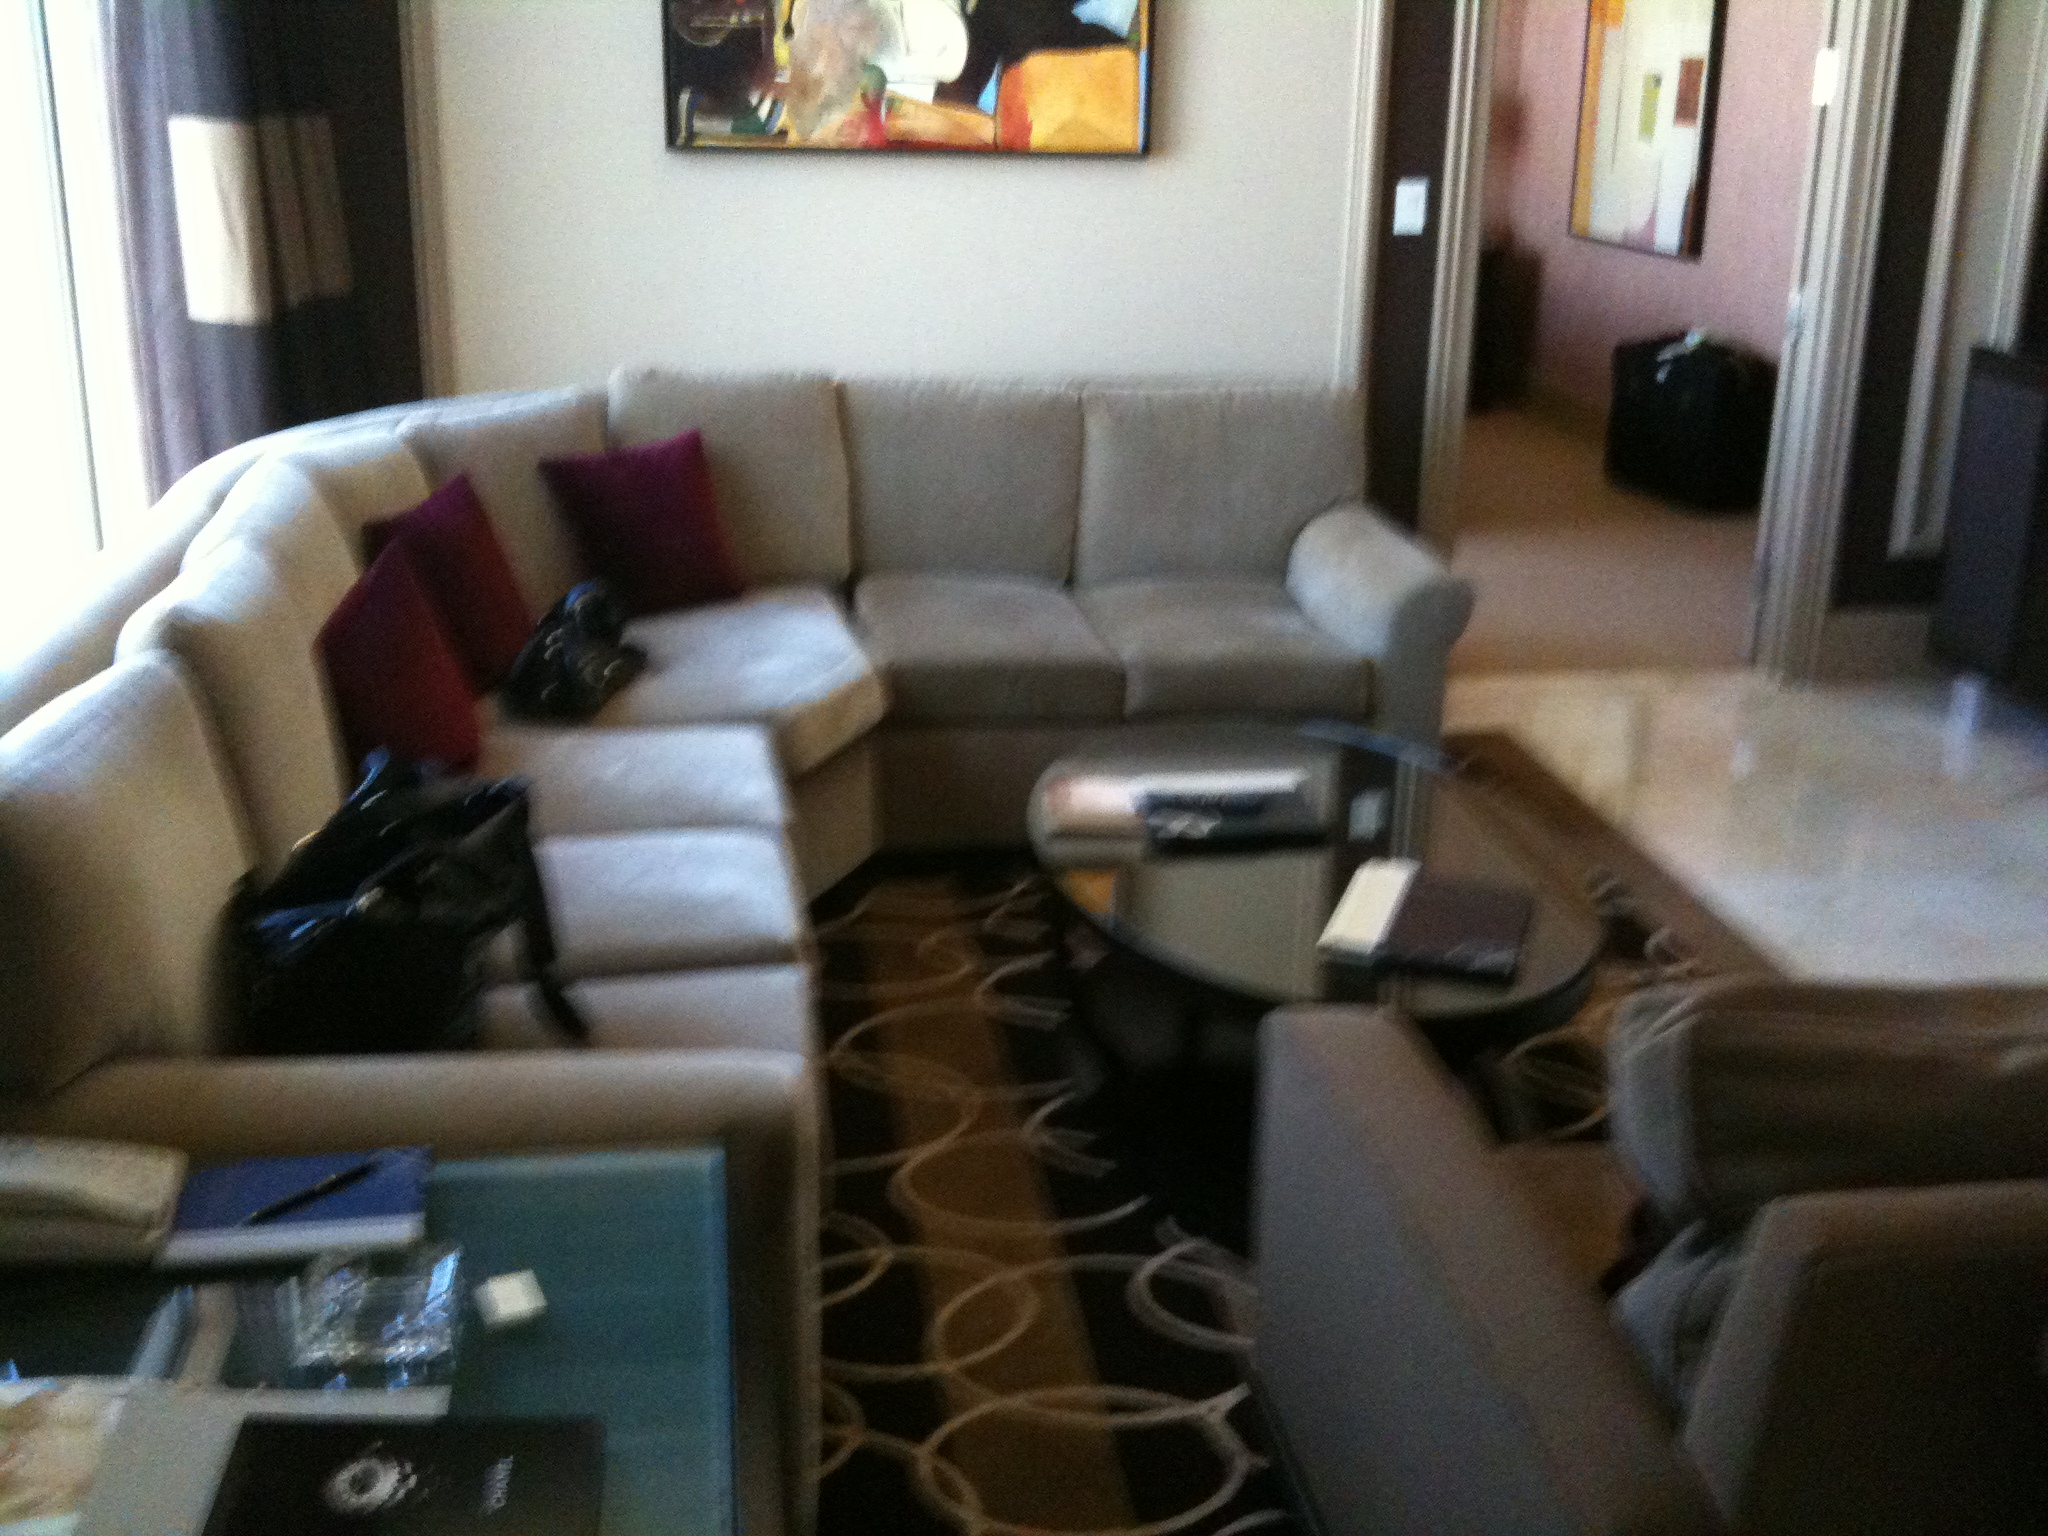 Bellagio 2 Bedroom Penthouse Suite Property update : bellagio penthouse part ii | the702guide